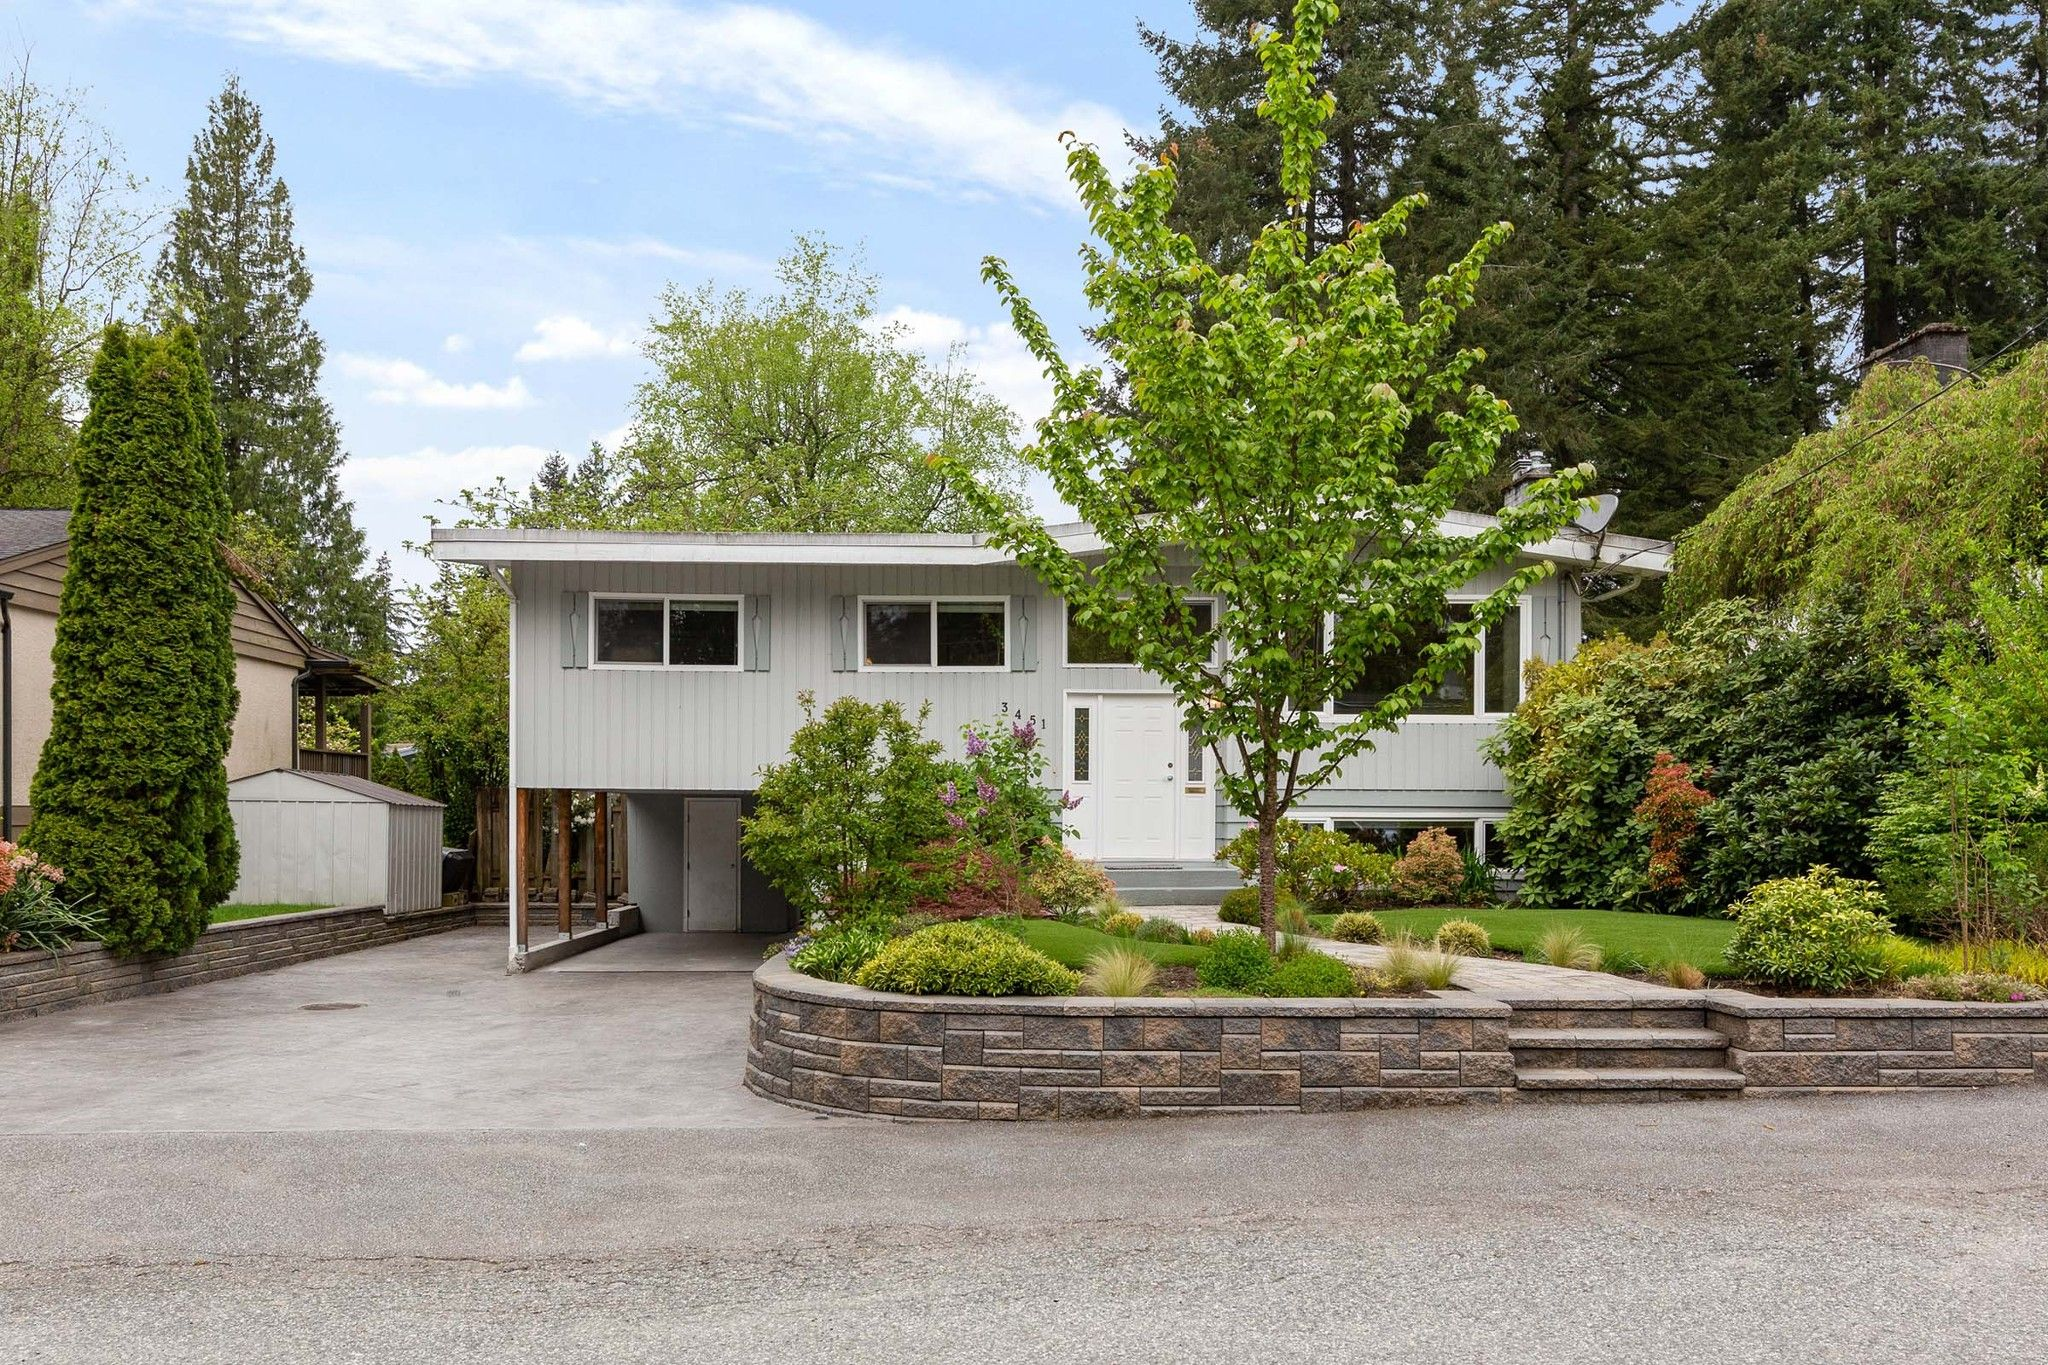 Main Photo: 3451 JERVIS Street in Port Coquitlam: Woodland Acres PQ House for sale : MLS®# R2573106